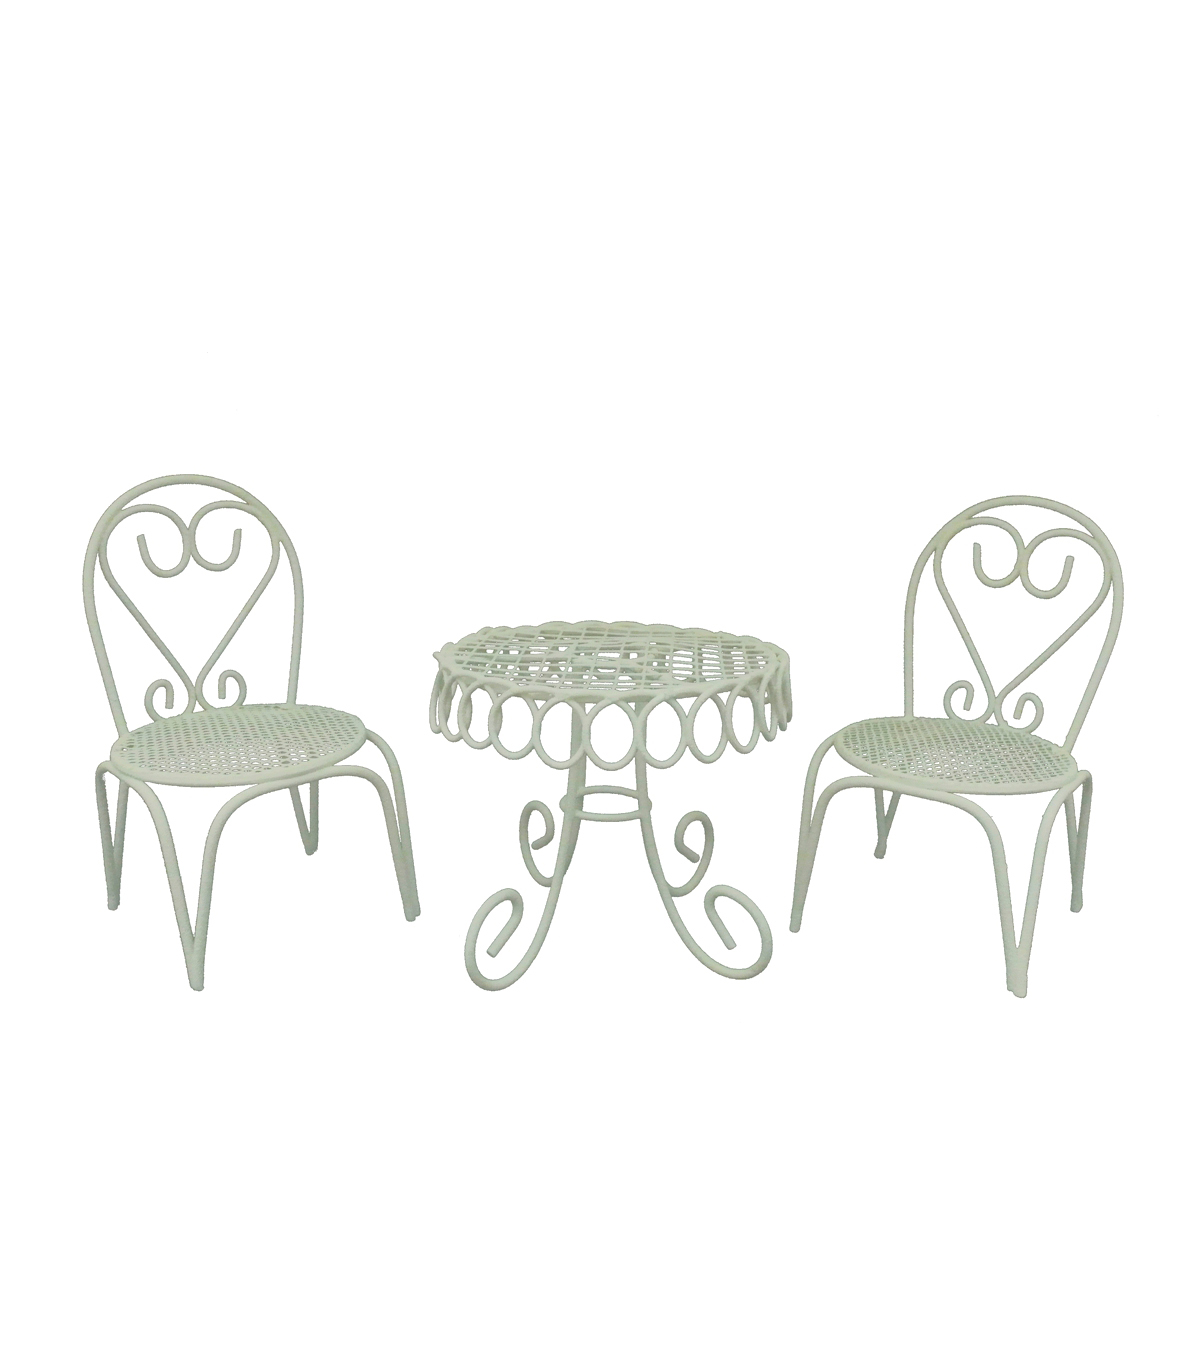 Bloom Room Littles Pack of 3 Iron Furniture Set